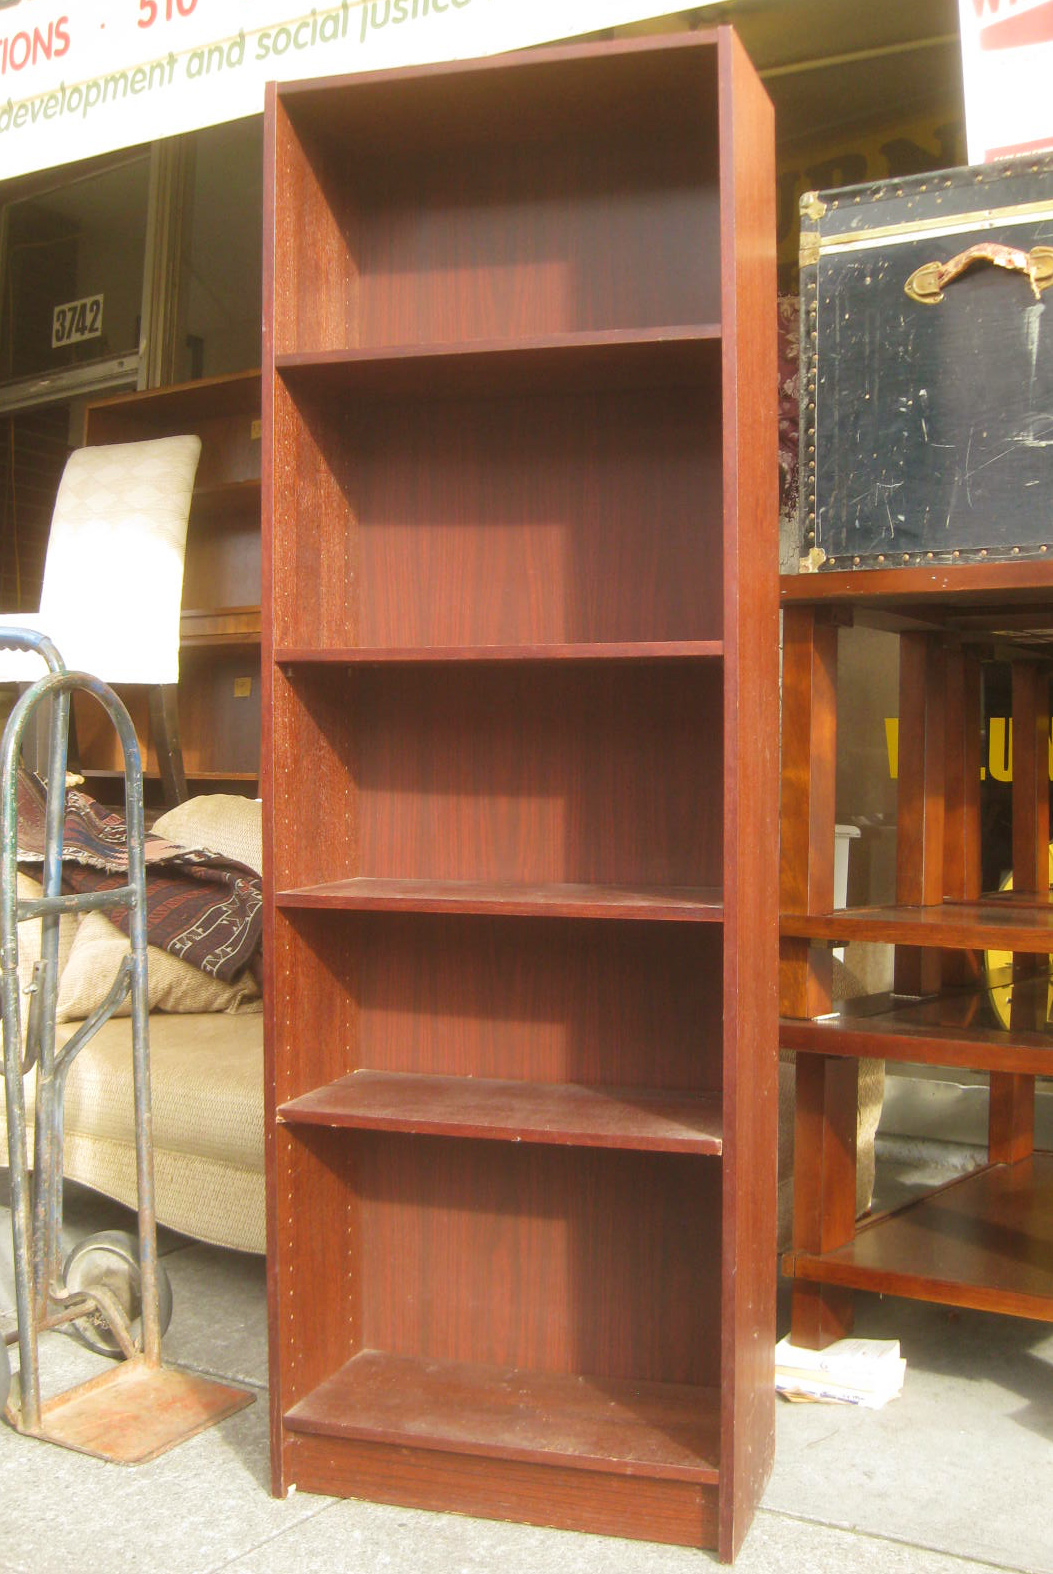 Sold Tall Slender Reddish Brown Bookshelf 50